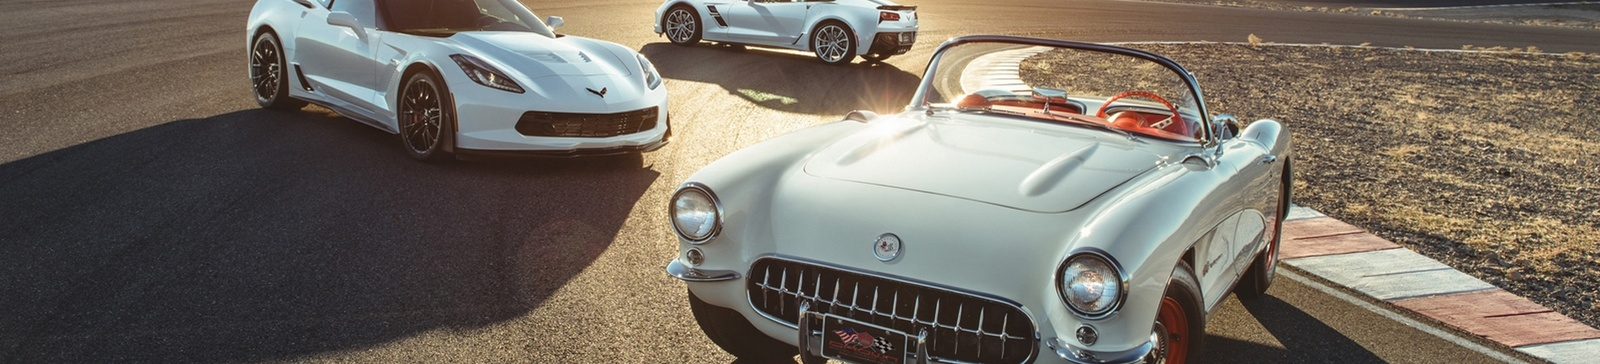 Chevy Corvettes